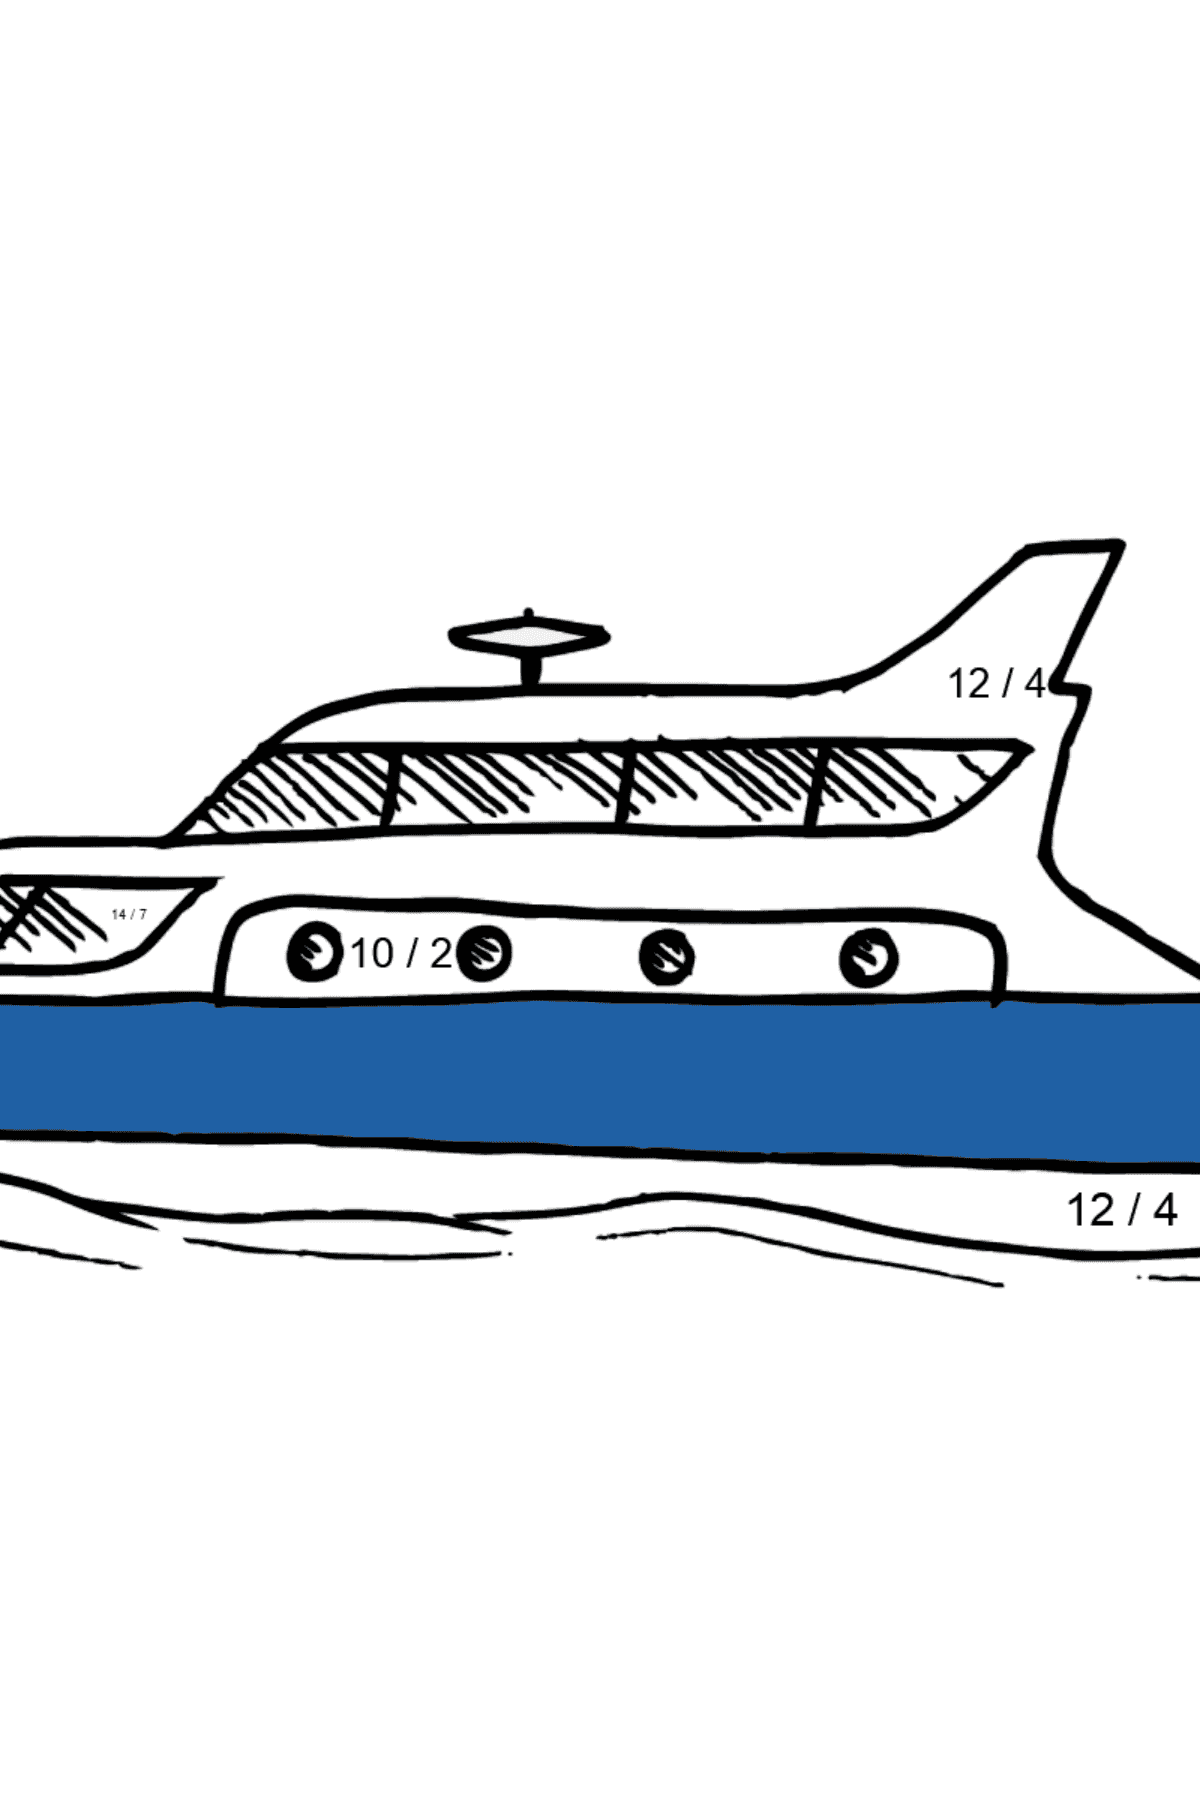 Coloring Page - A Yacht - Math Coloring - Division for Kids